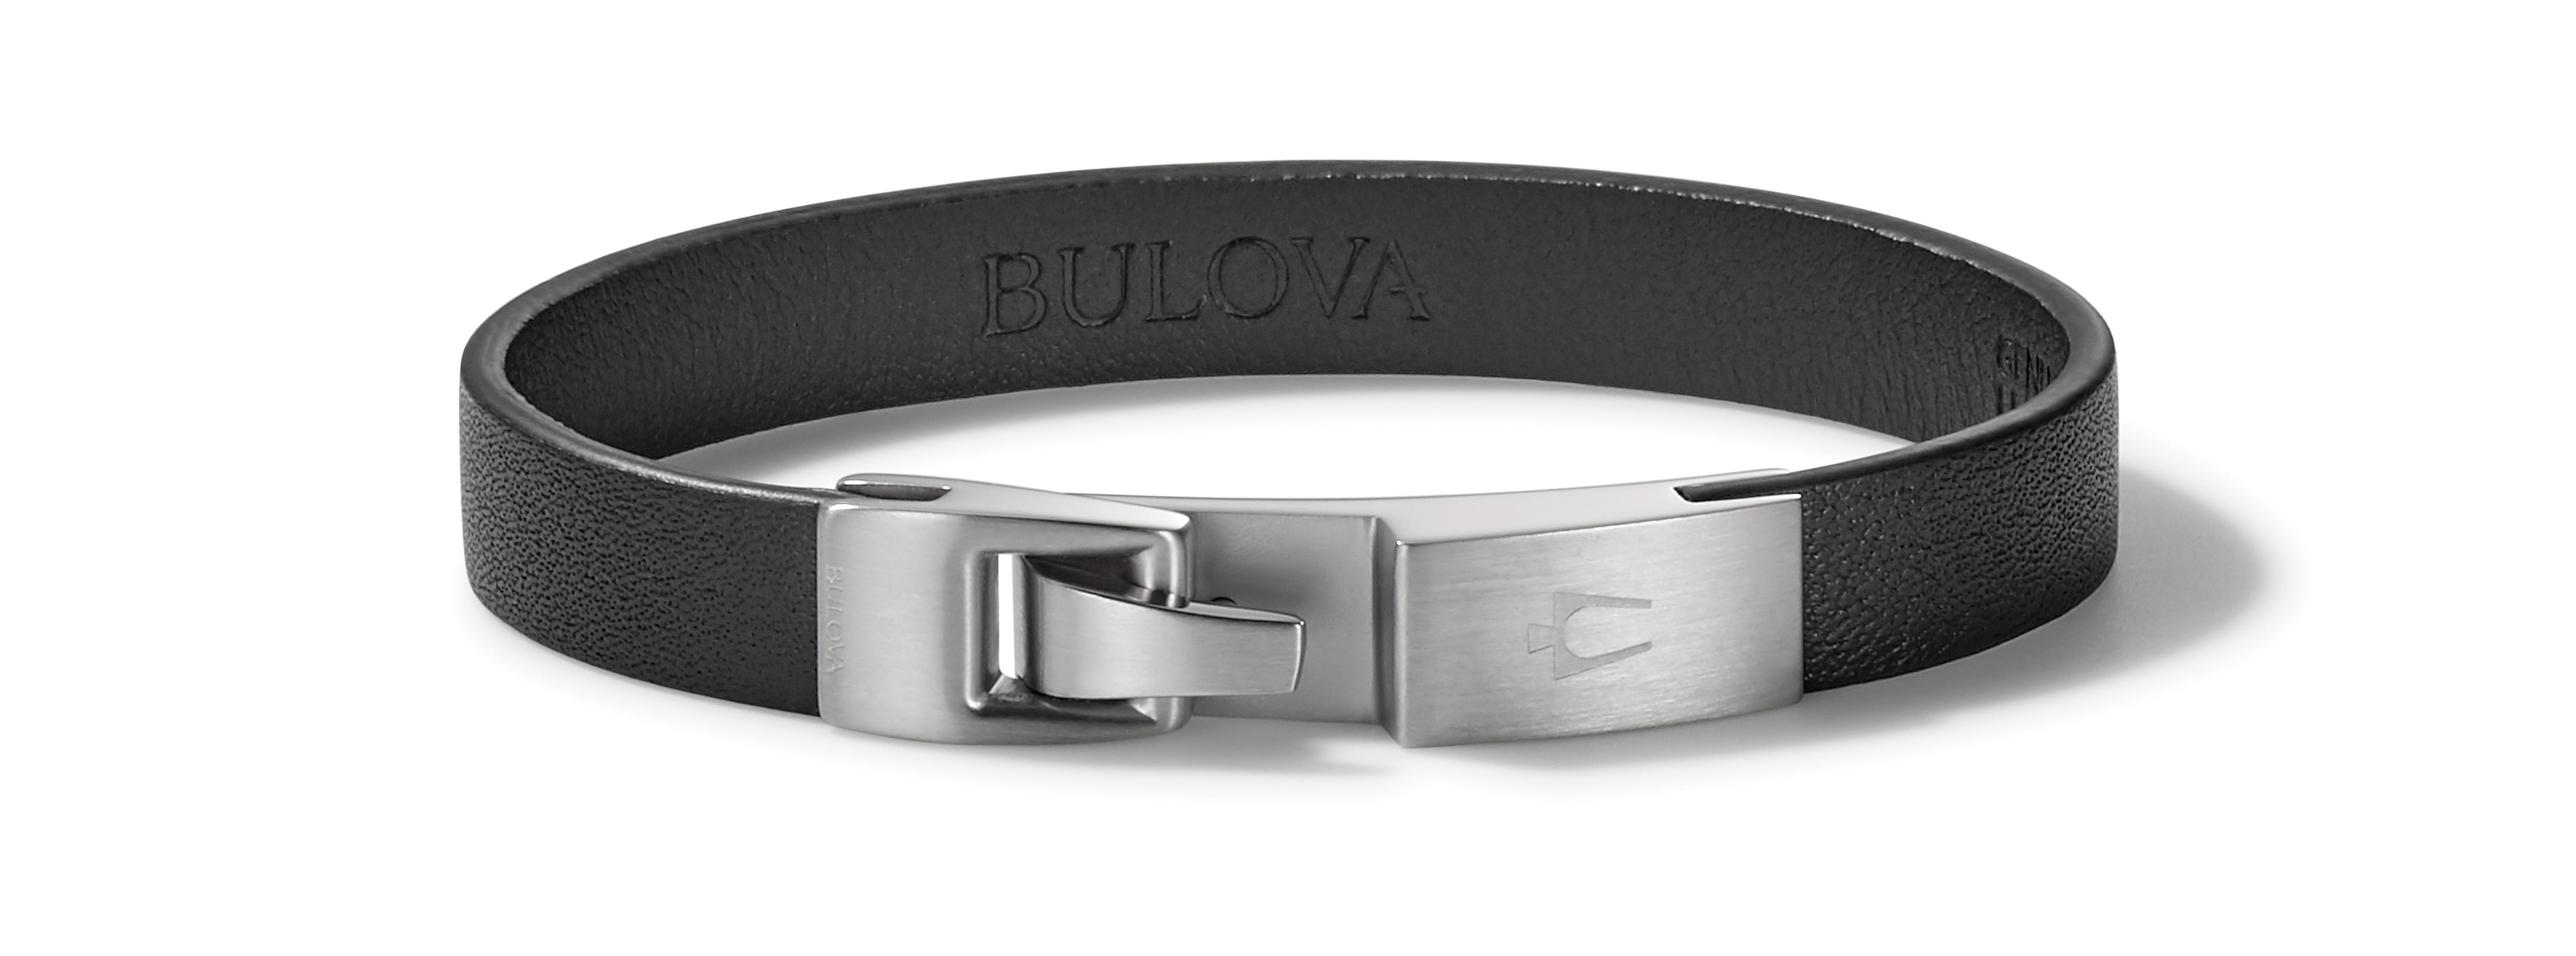 Bulova Classic Smooth Black Leather Bracelet with Stainless Steel Clasp J96B019L